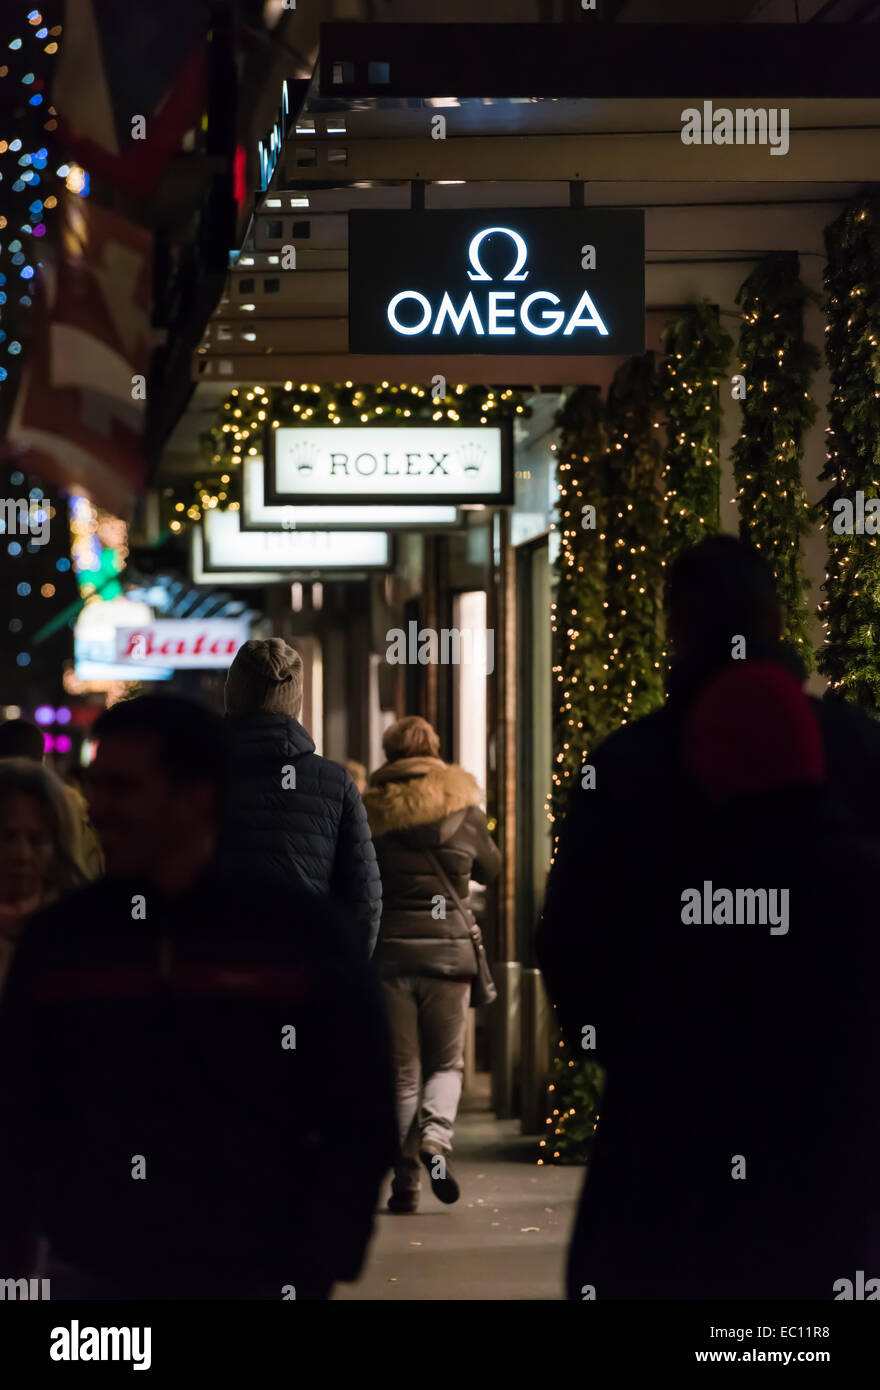 Christmas shoppers at night pass by luxury watch shops on the festively illuminated Zurich (Switzerland)  Bahnhofstrasse. - Stock Image